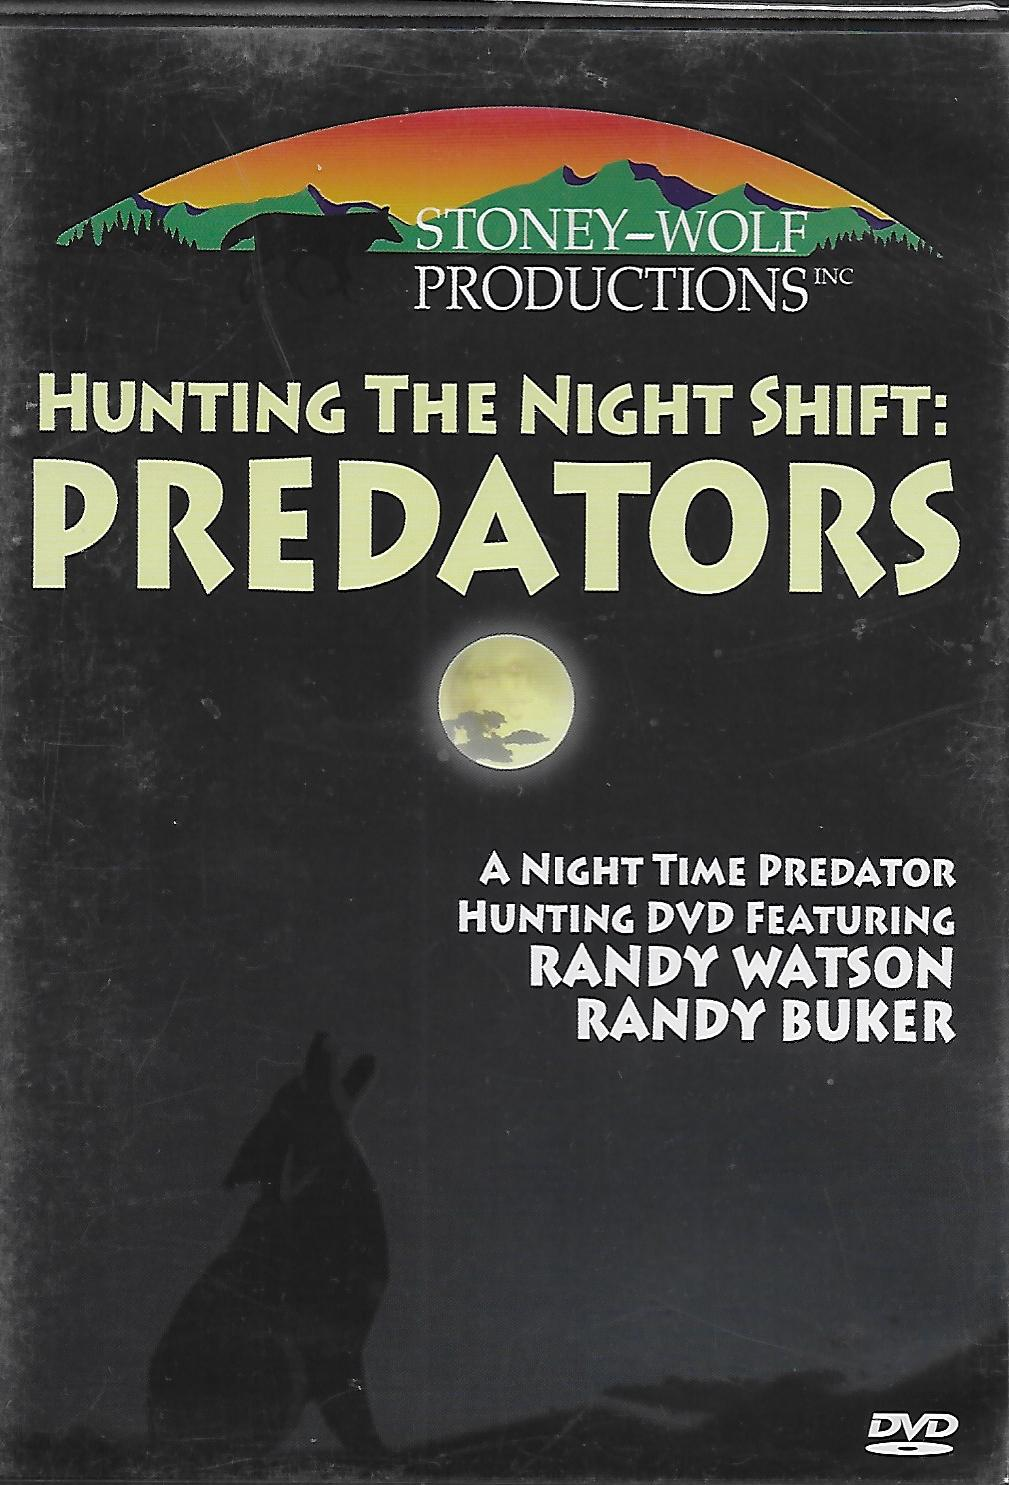 Hunting Night Shift Predators DVD